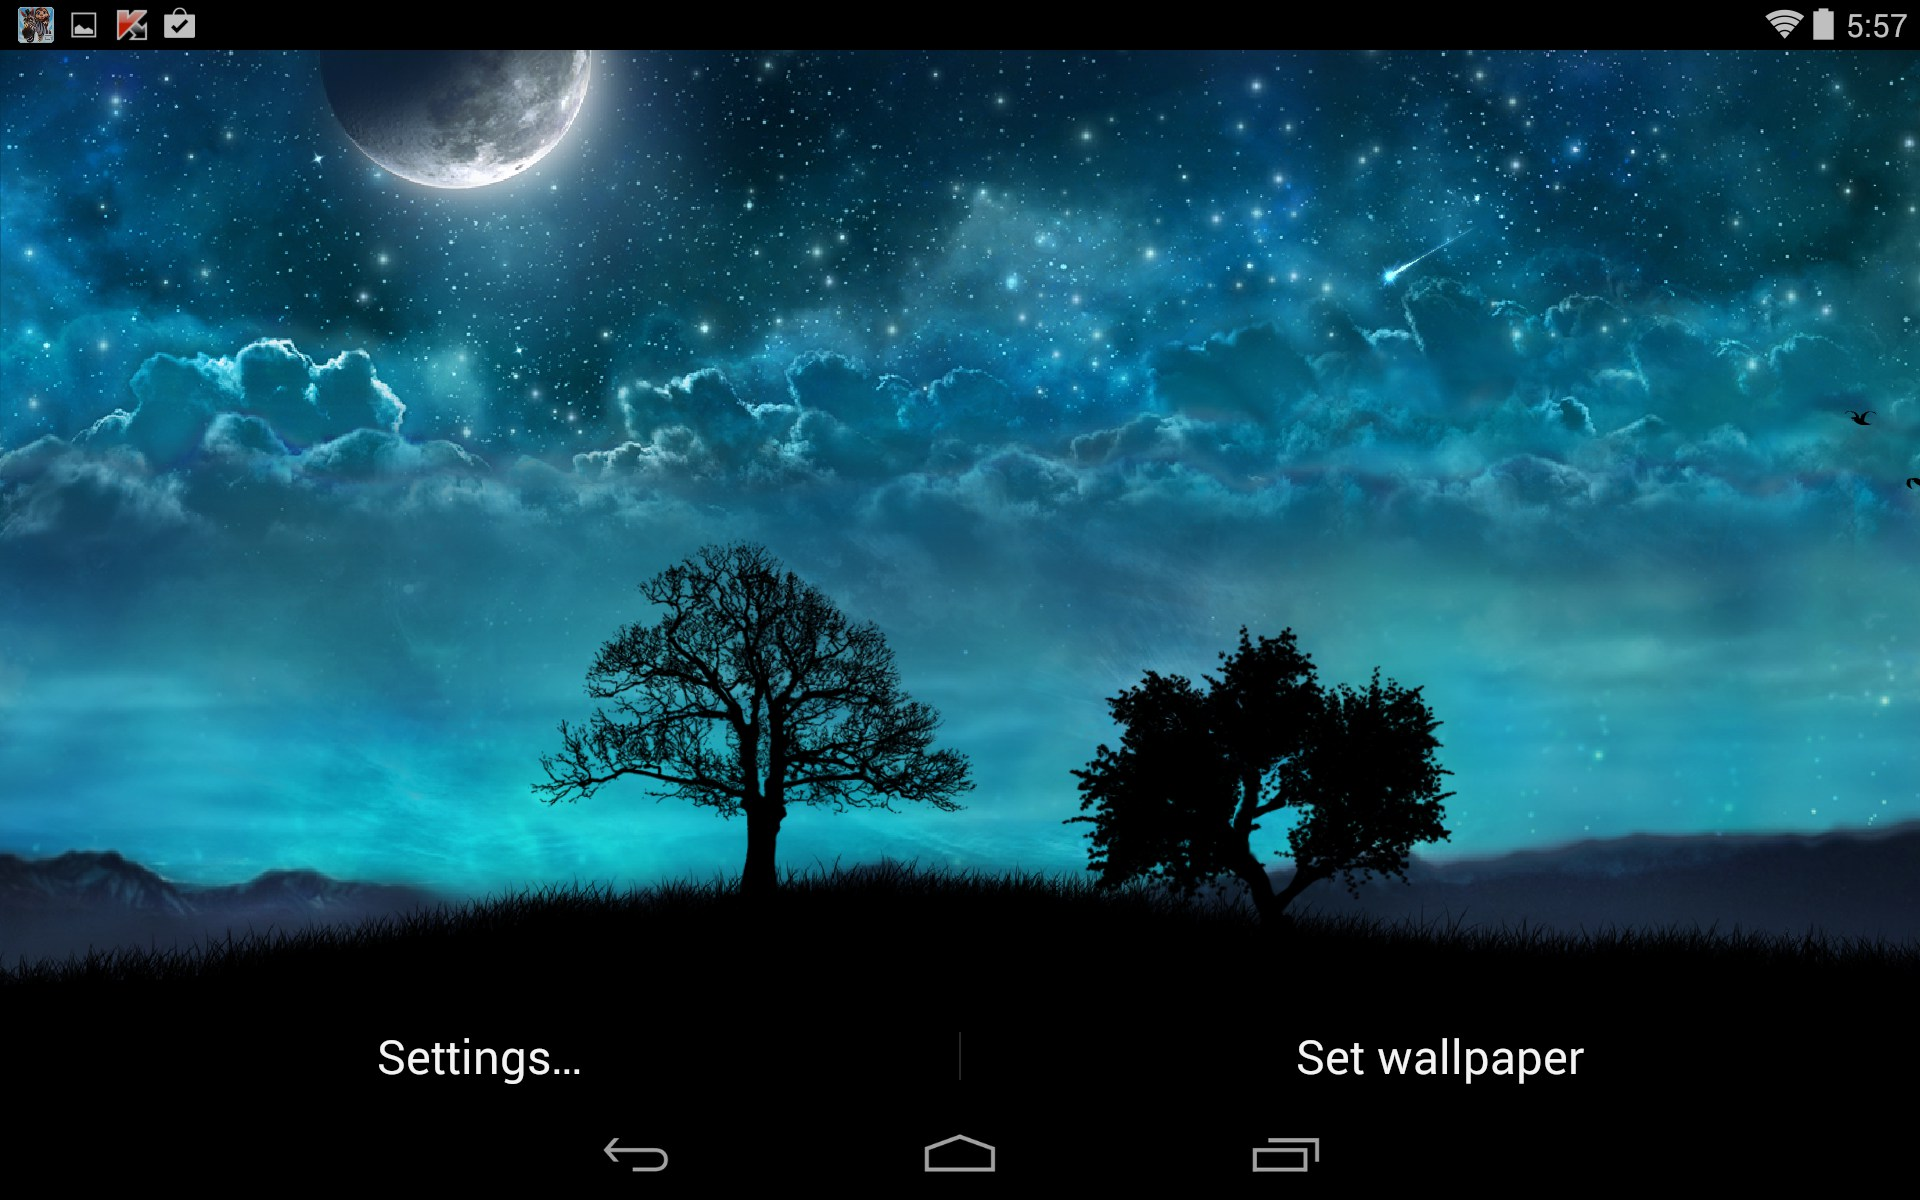 samsung galaxy s5 wallpaper settings